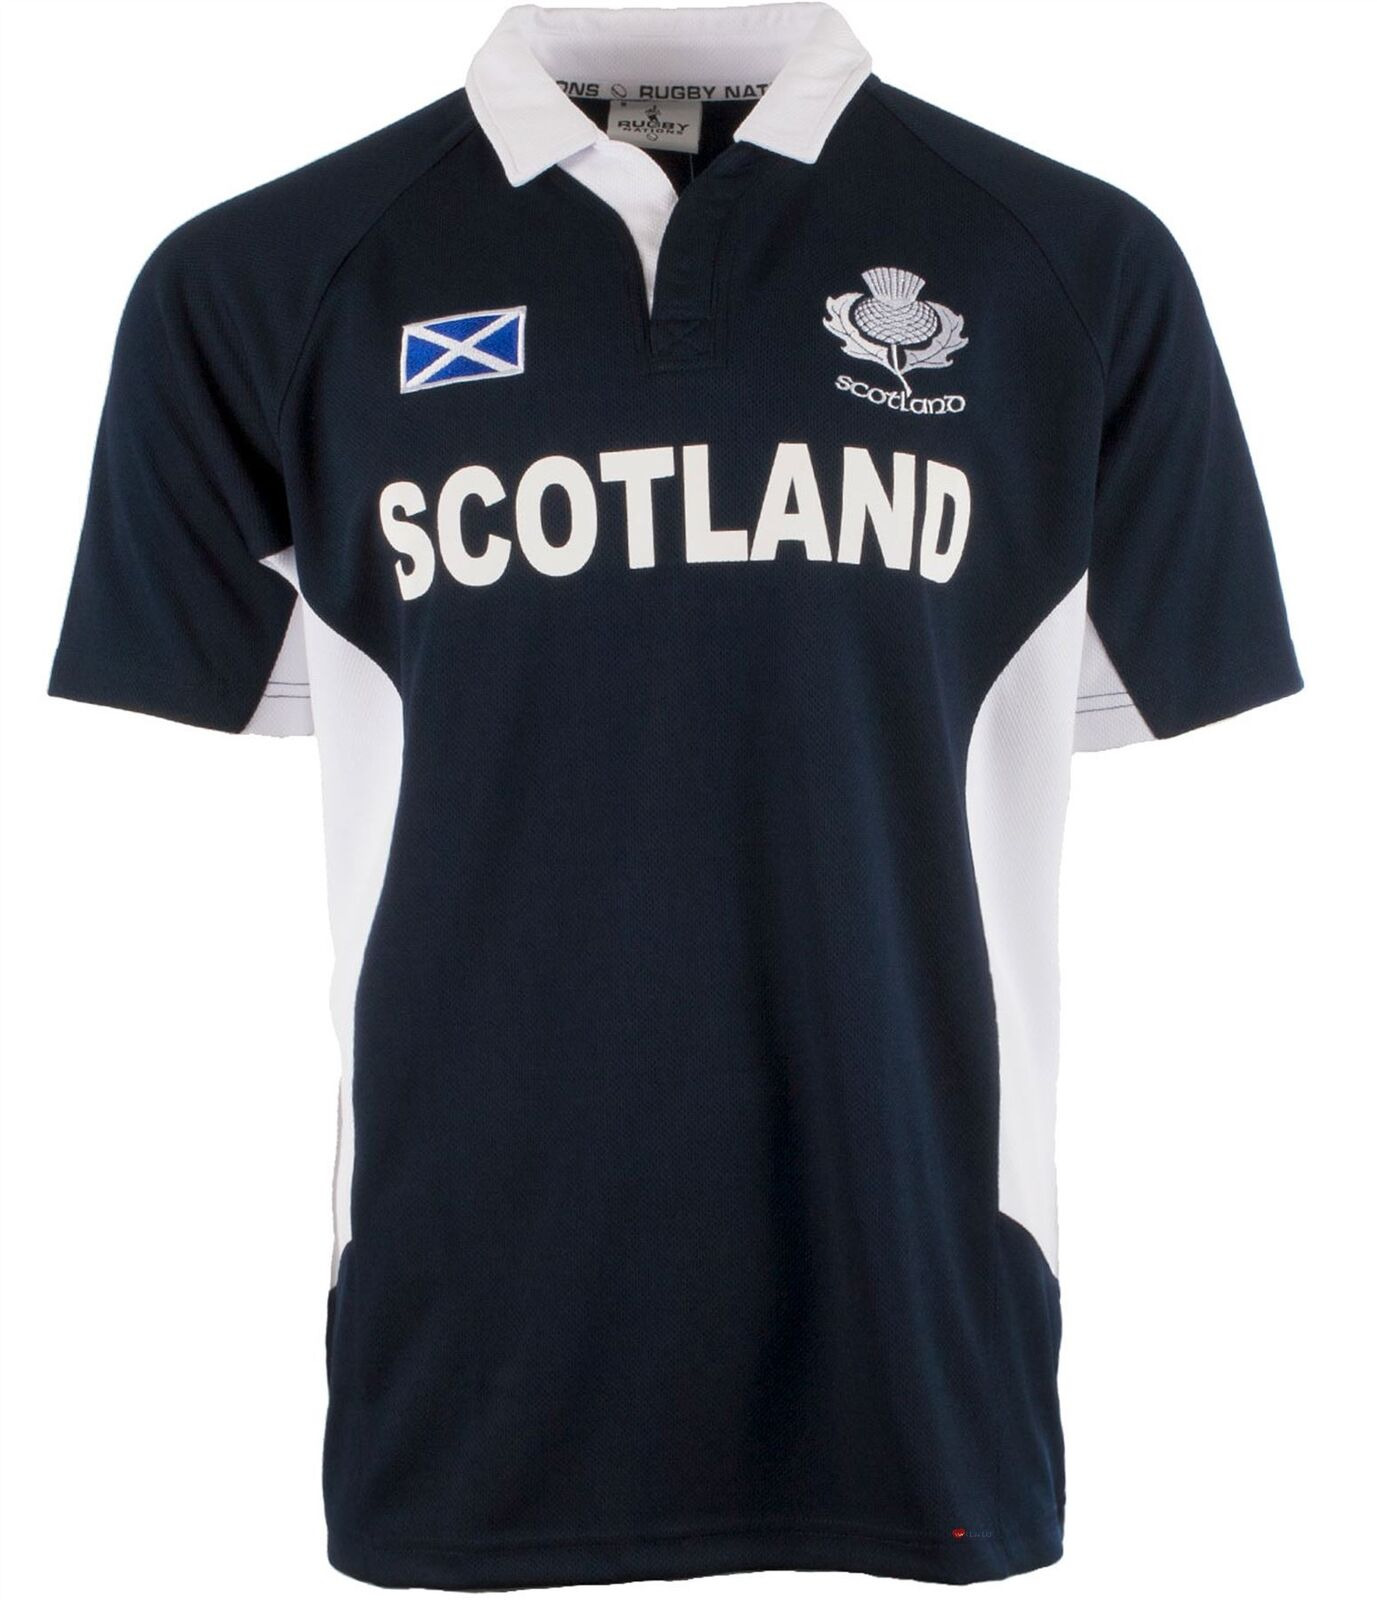 Gents Rugby Nations Rugby Shirt With Thistle Design In In In Navy Größe Small | Sale Online Shop